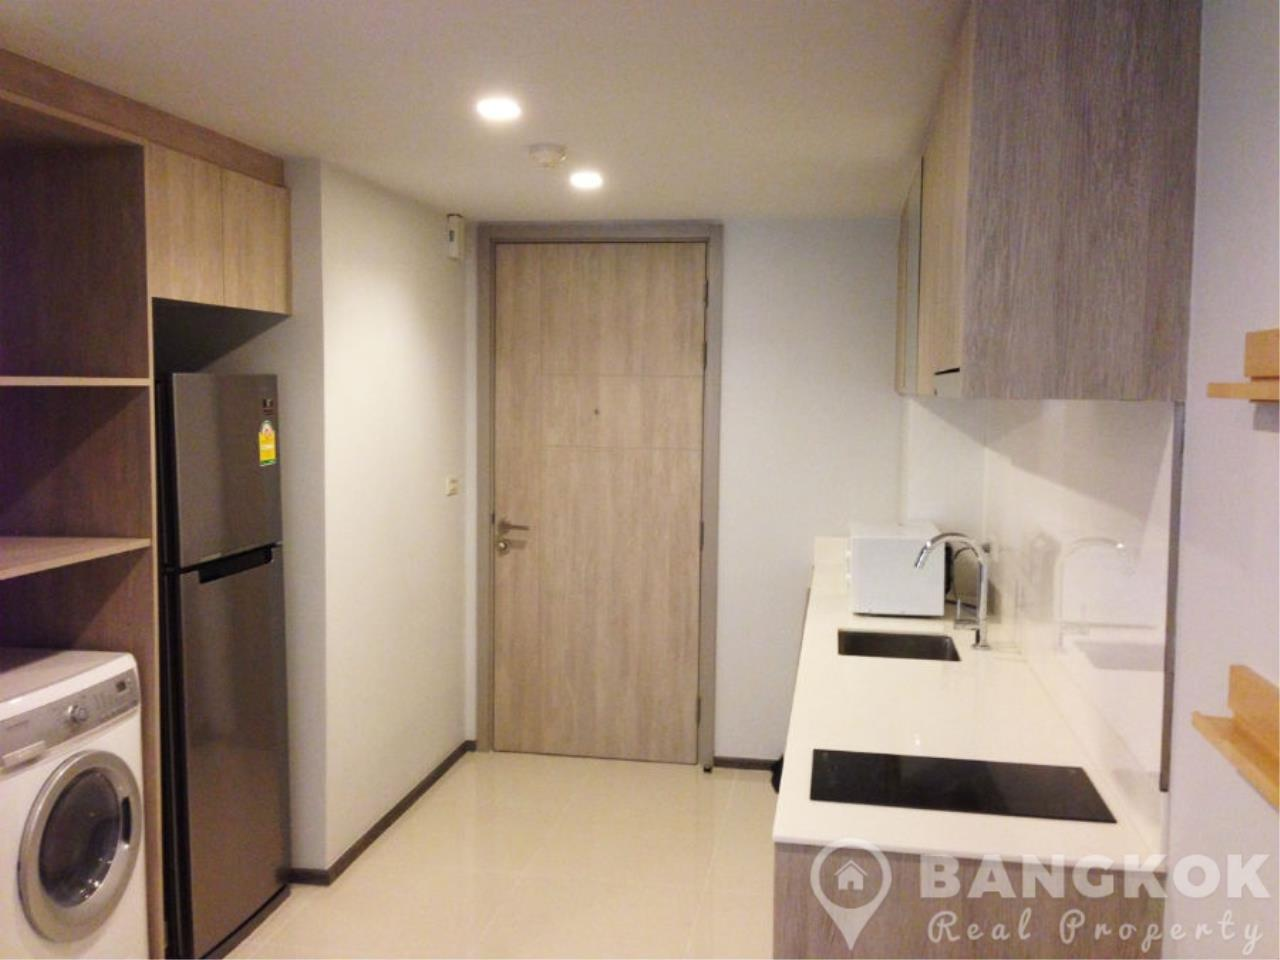 Bangkok Real Property Agency's Sari Sukhumvit 64 | Fabulous 2 Bed 2 Bath near BTS 5